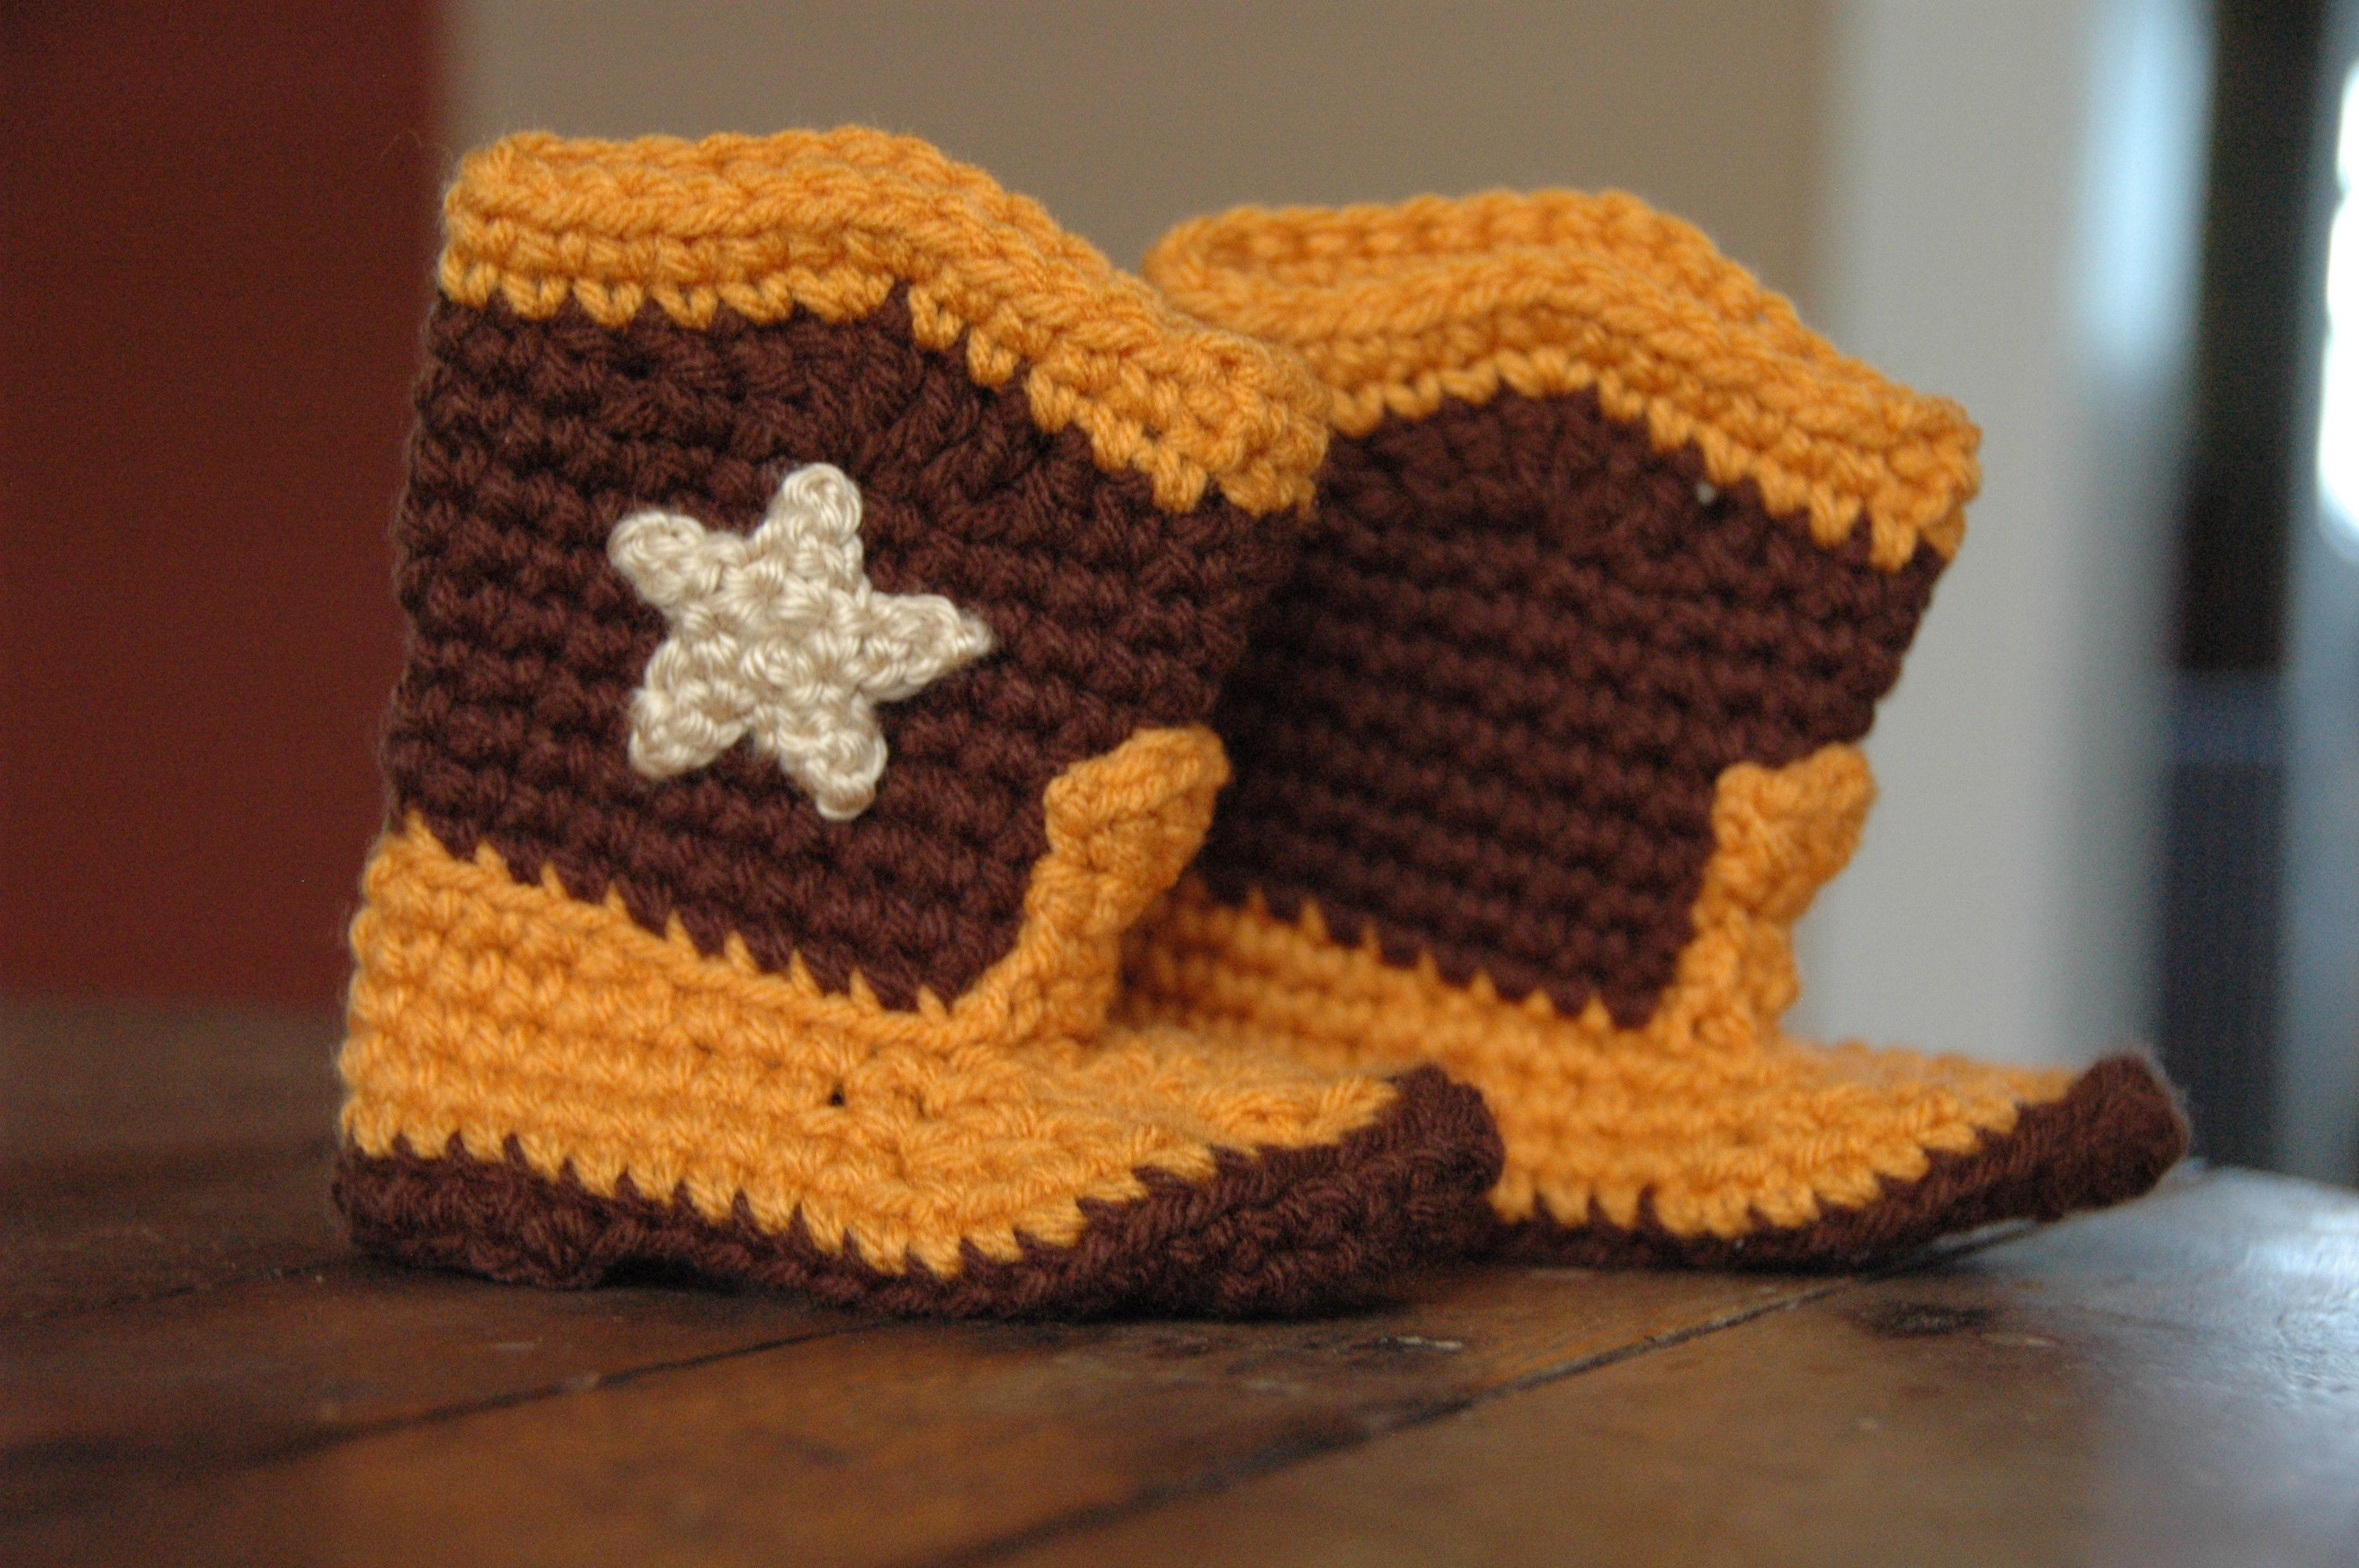 Cowboy booties | Crochet | Pinterest